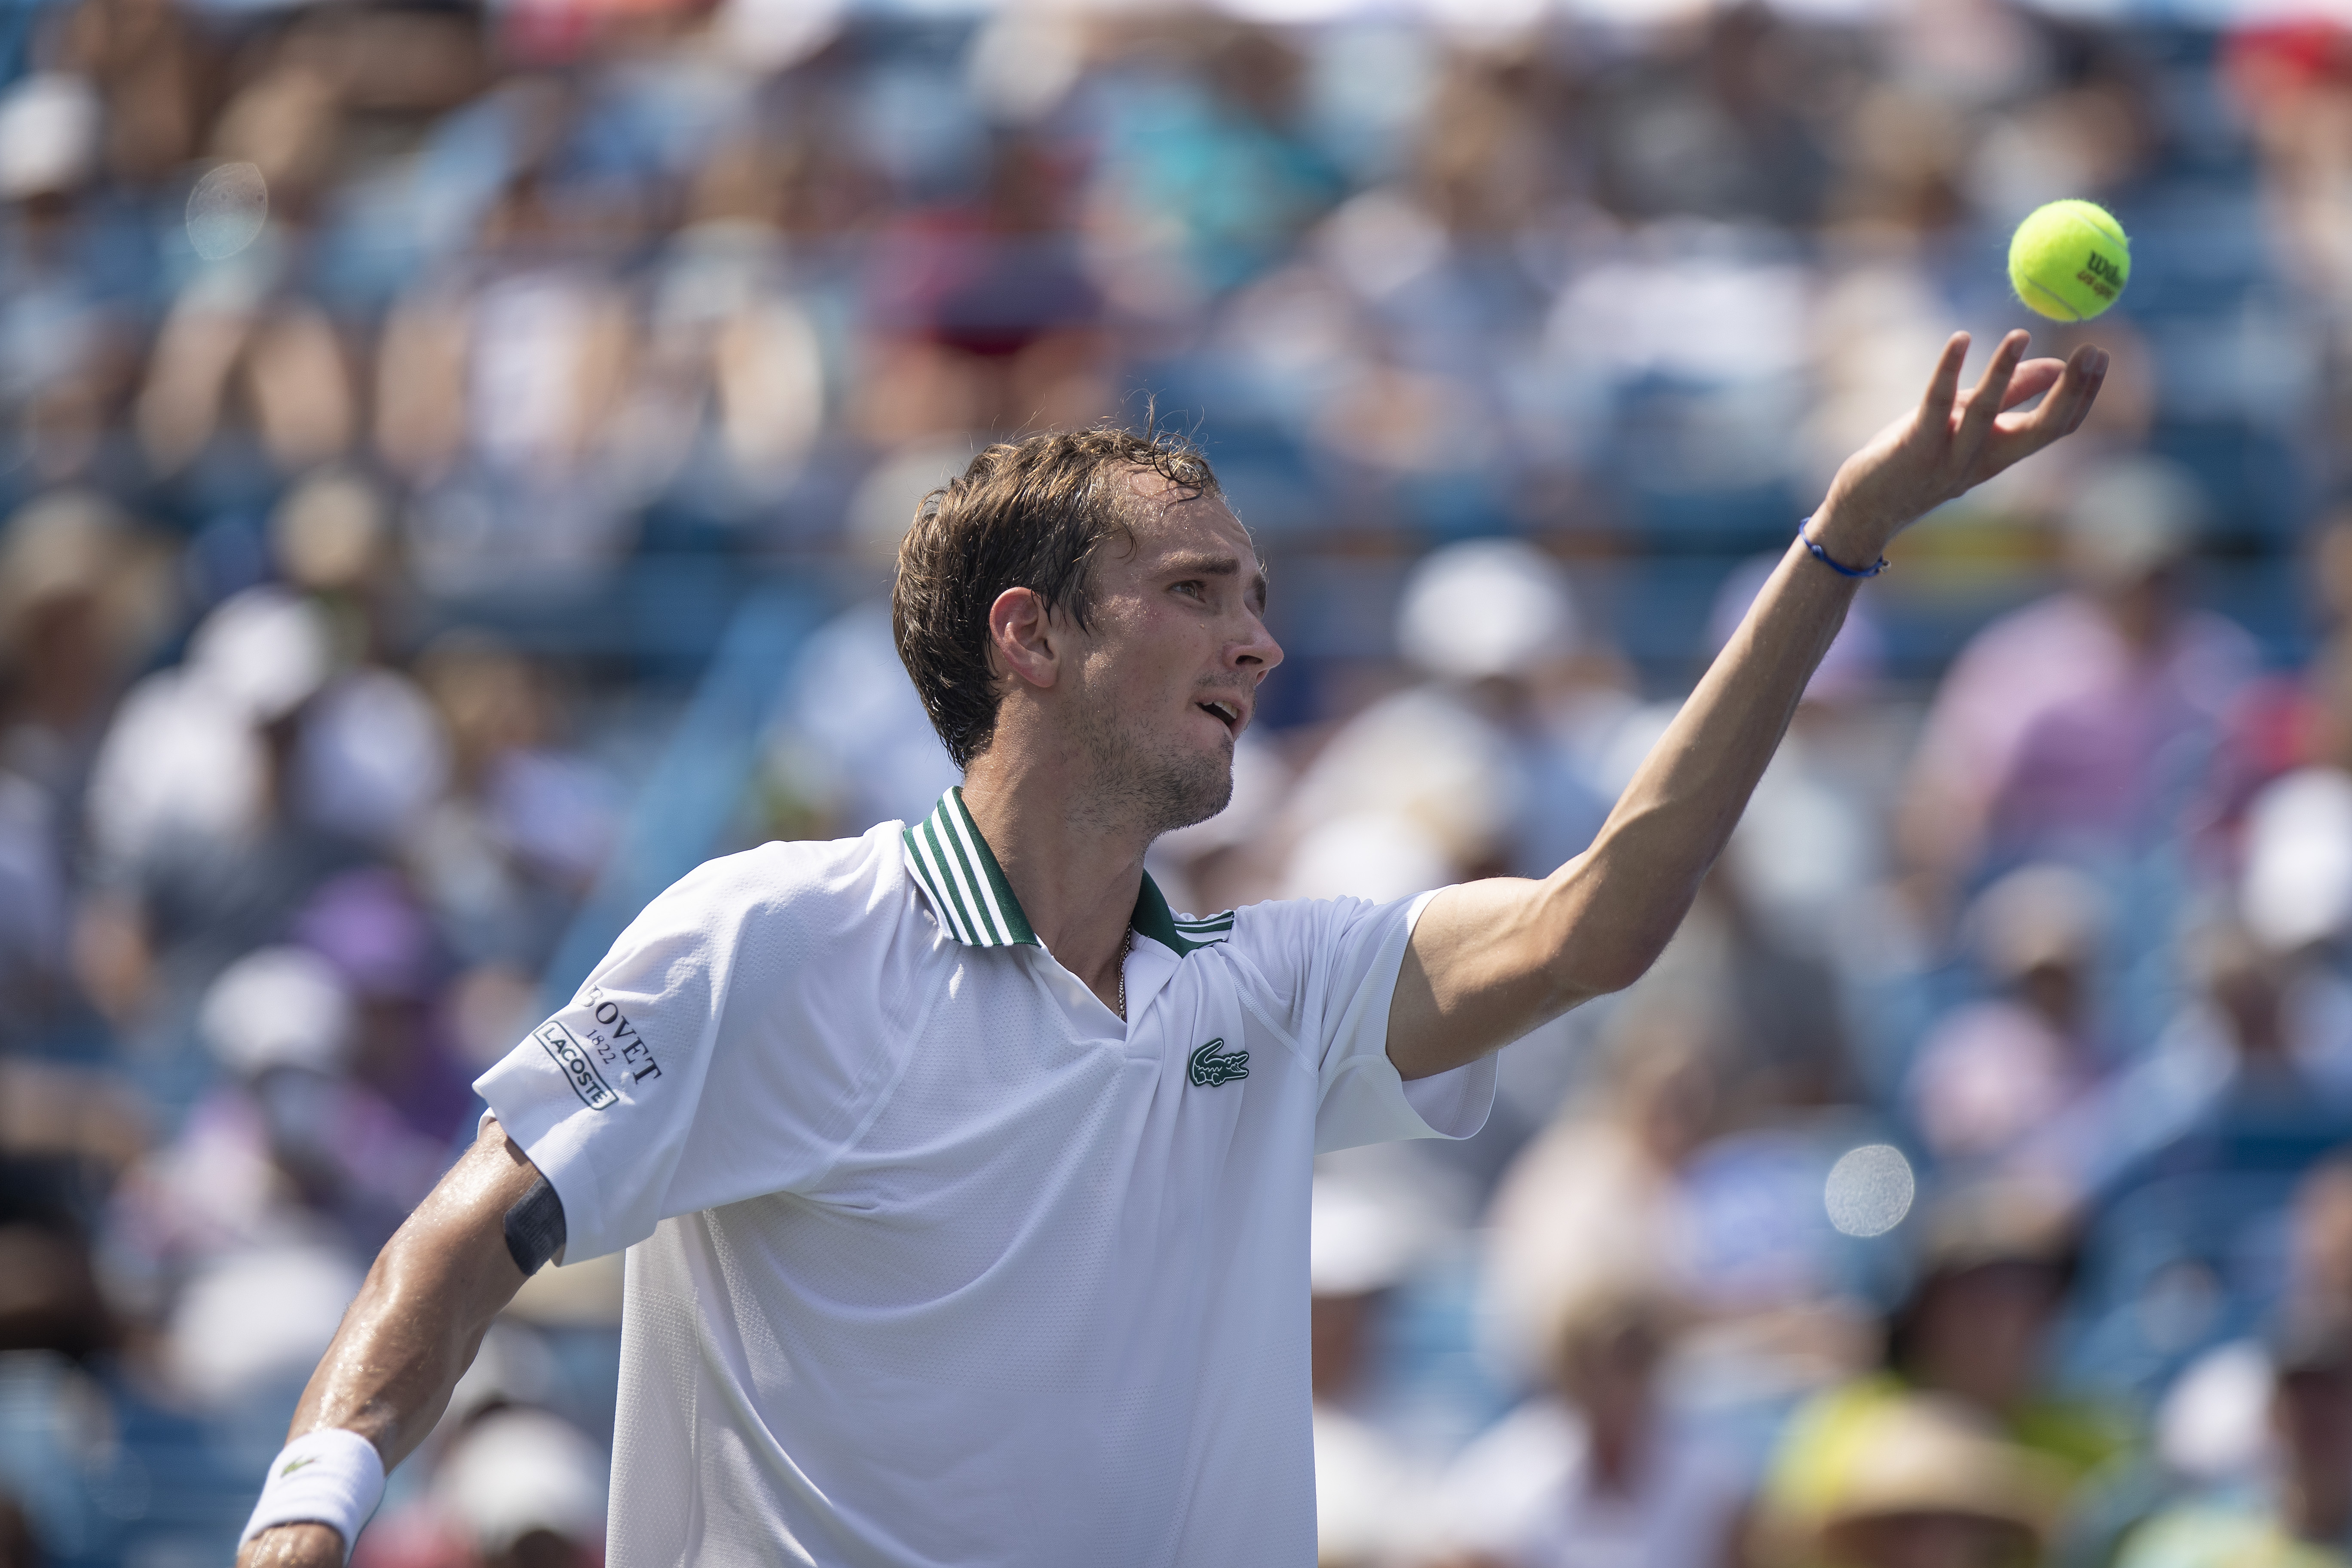 Aug 21, 2021; Mason, OH, USA; Daniil Medvedev (RUS) serves the ball during his semifinal match against Andrey Rublev (RUS not pictured) during the Western and Southern Open at the Lindner Family Tennis Center. Mandatory Credit: Susan Mullane-USA TODAY Sports